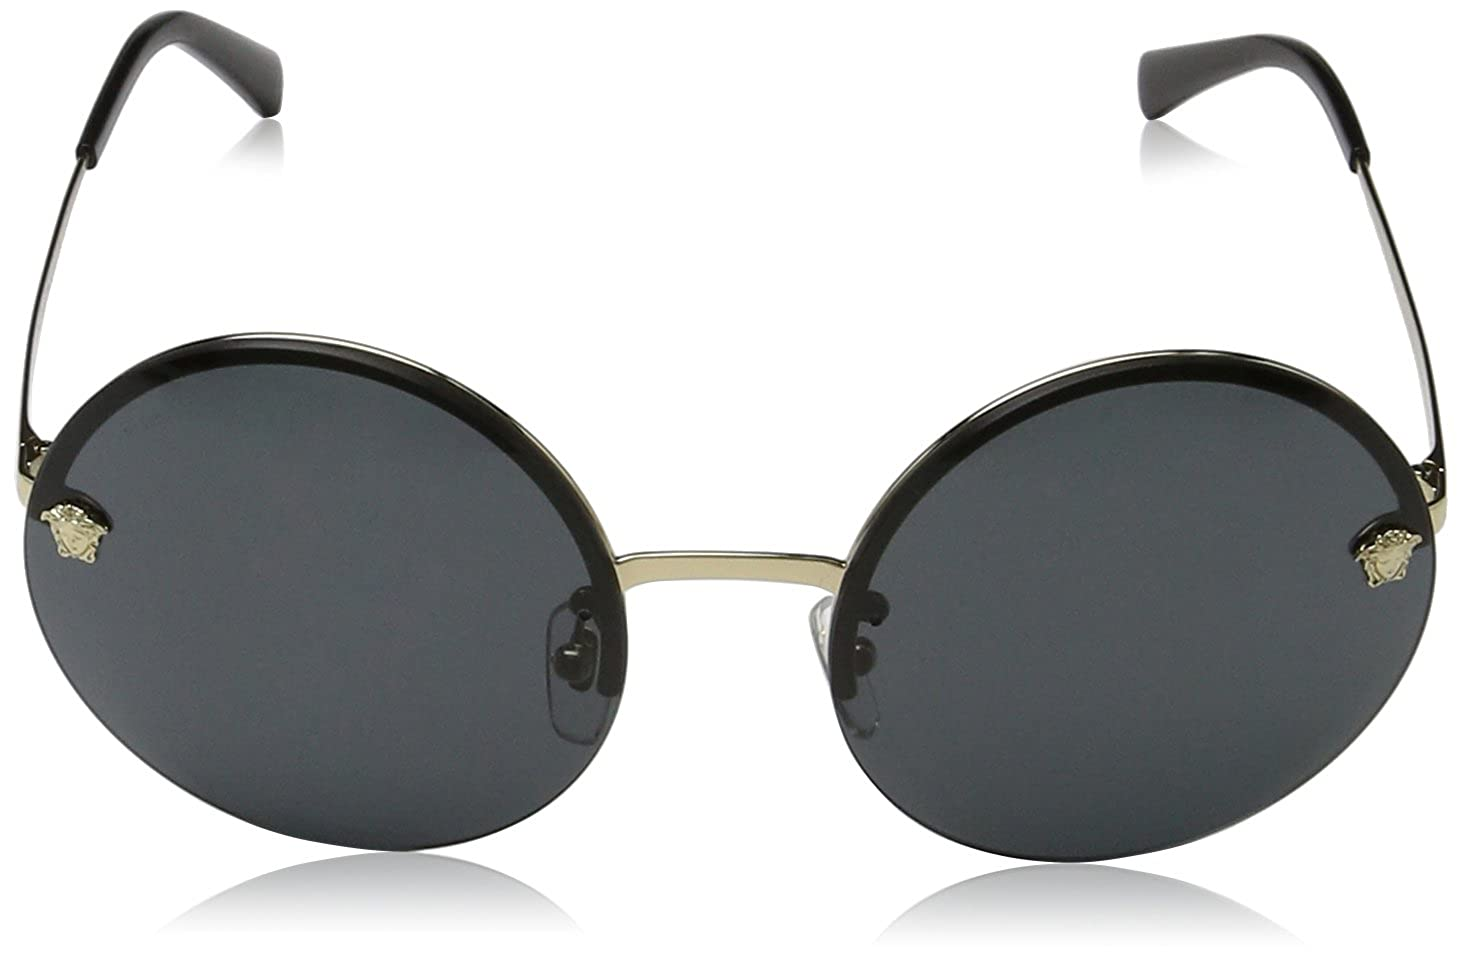 e2e9a6b10c05 Amazon.com  Versace Womens Sunglasses Gold Gold Metal - Non-Polarized -  59mm  Versace  Clothing